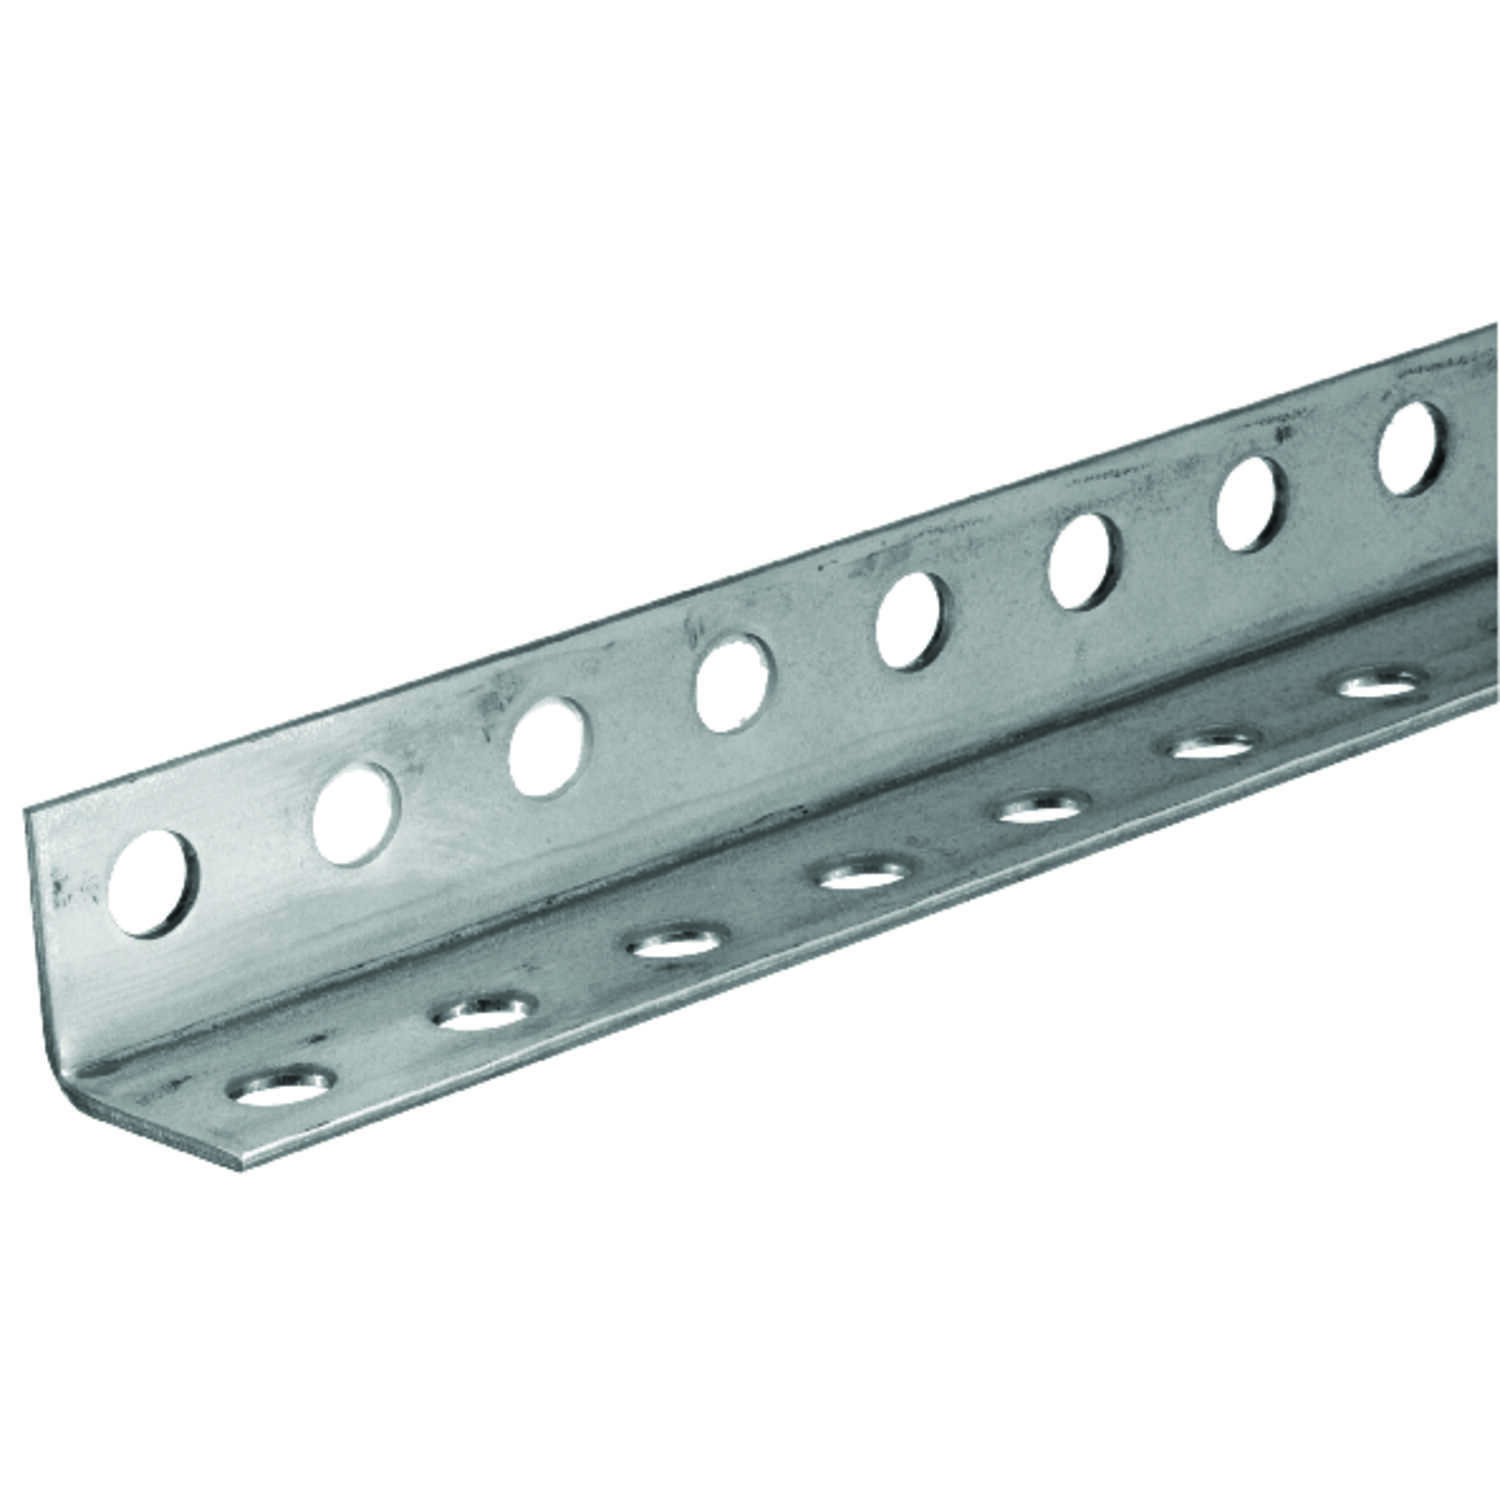 Boltmaster  1.25 in. H x 1.25 in. H x 36 in. L Perforated Angle  Zinc Plated Steel